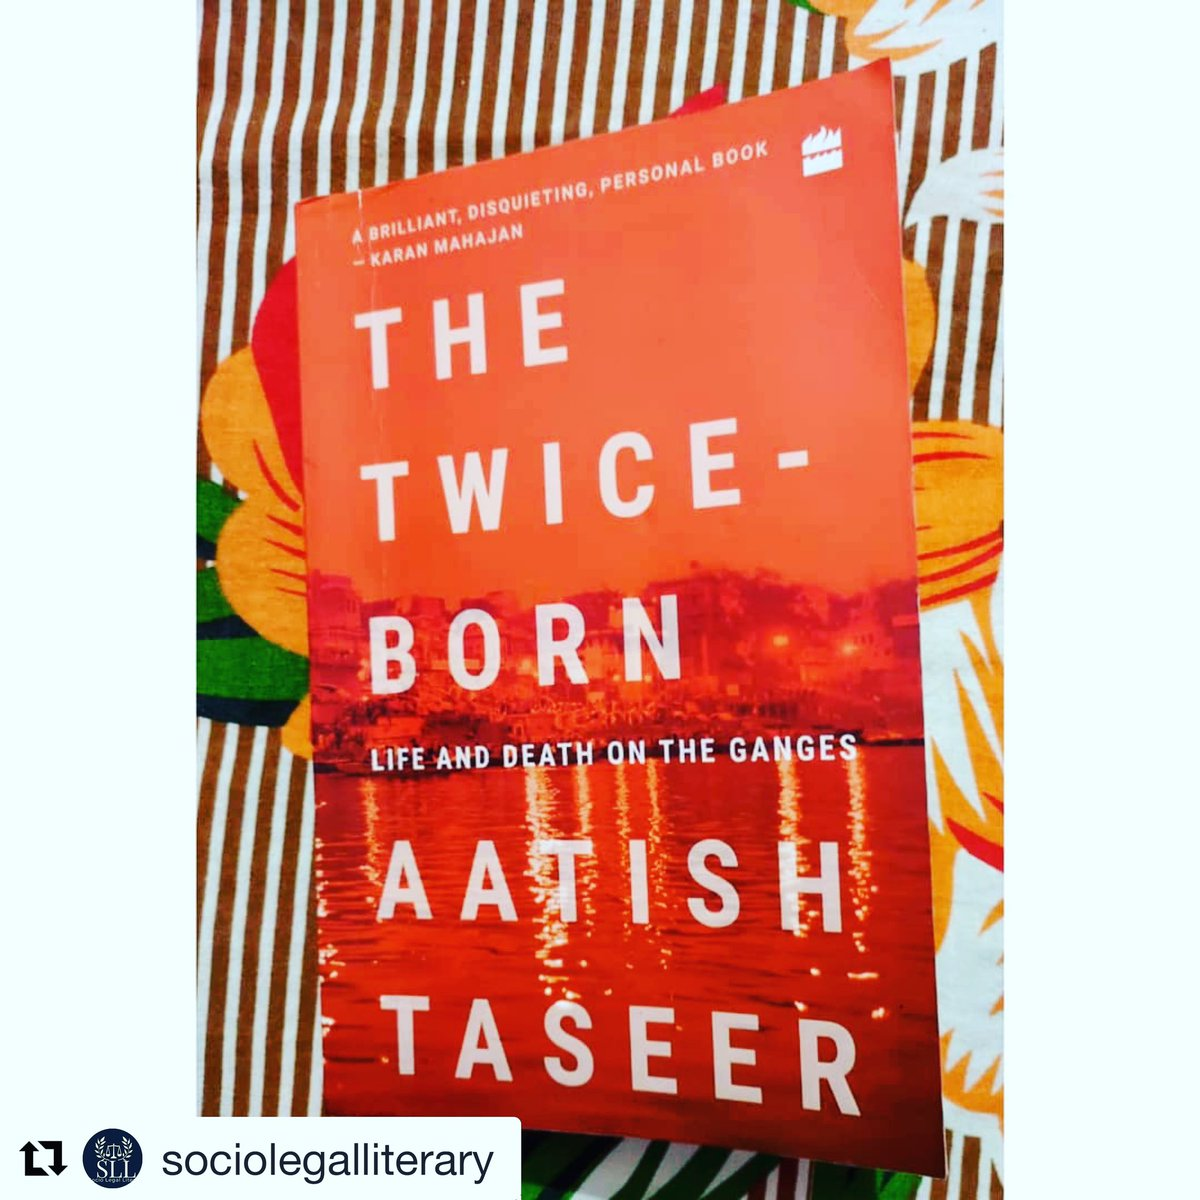 This is a very thoughtful reading of my book, The Twice-Born. https://t.co/MO65upBHzo